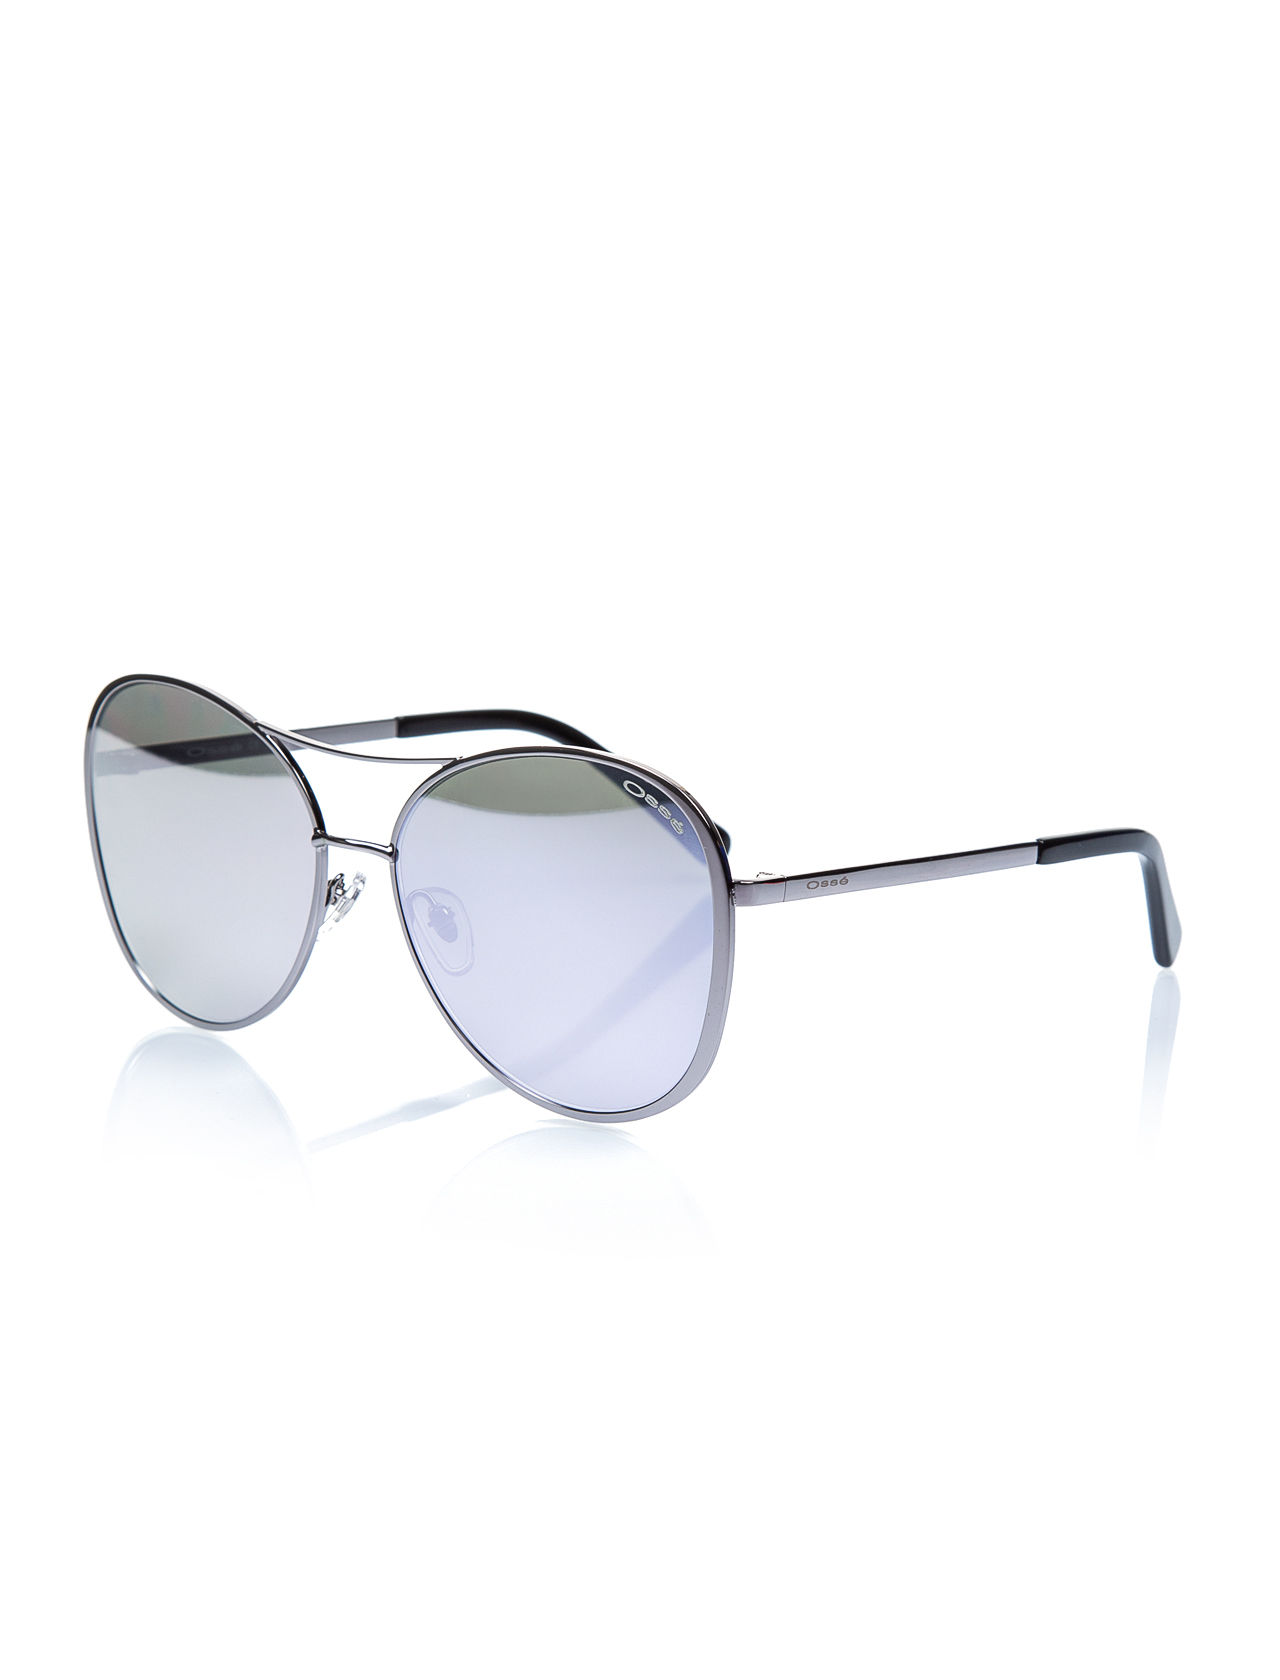 Women's sunglasses os 2754 02 metal silver organic oval aval 60-16-140 osse